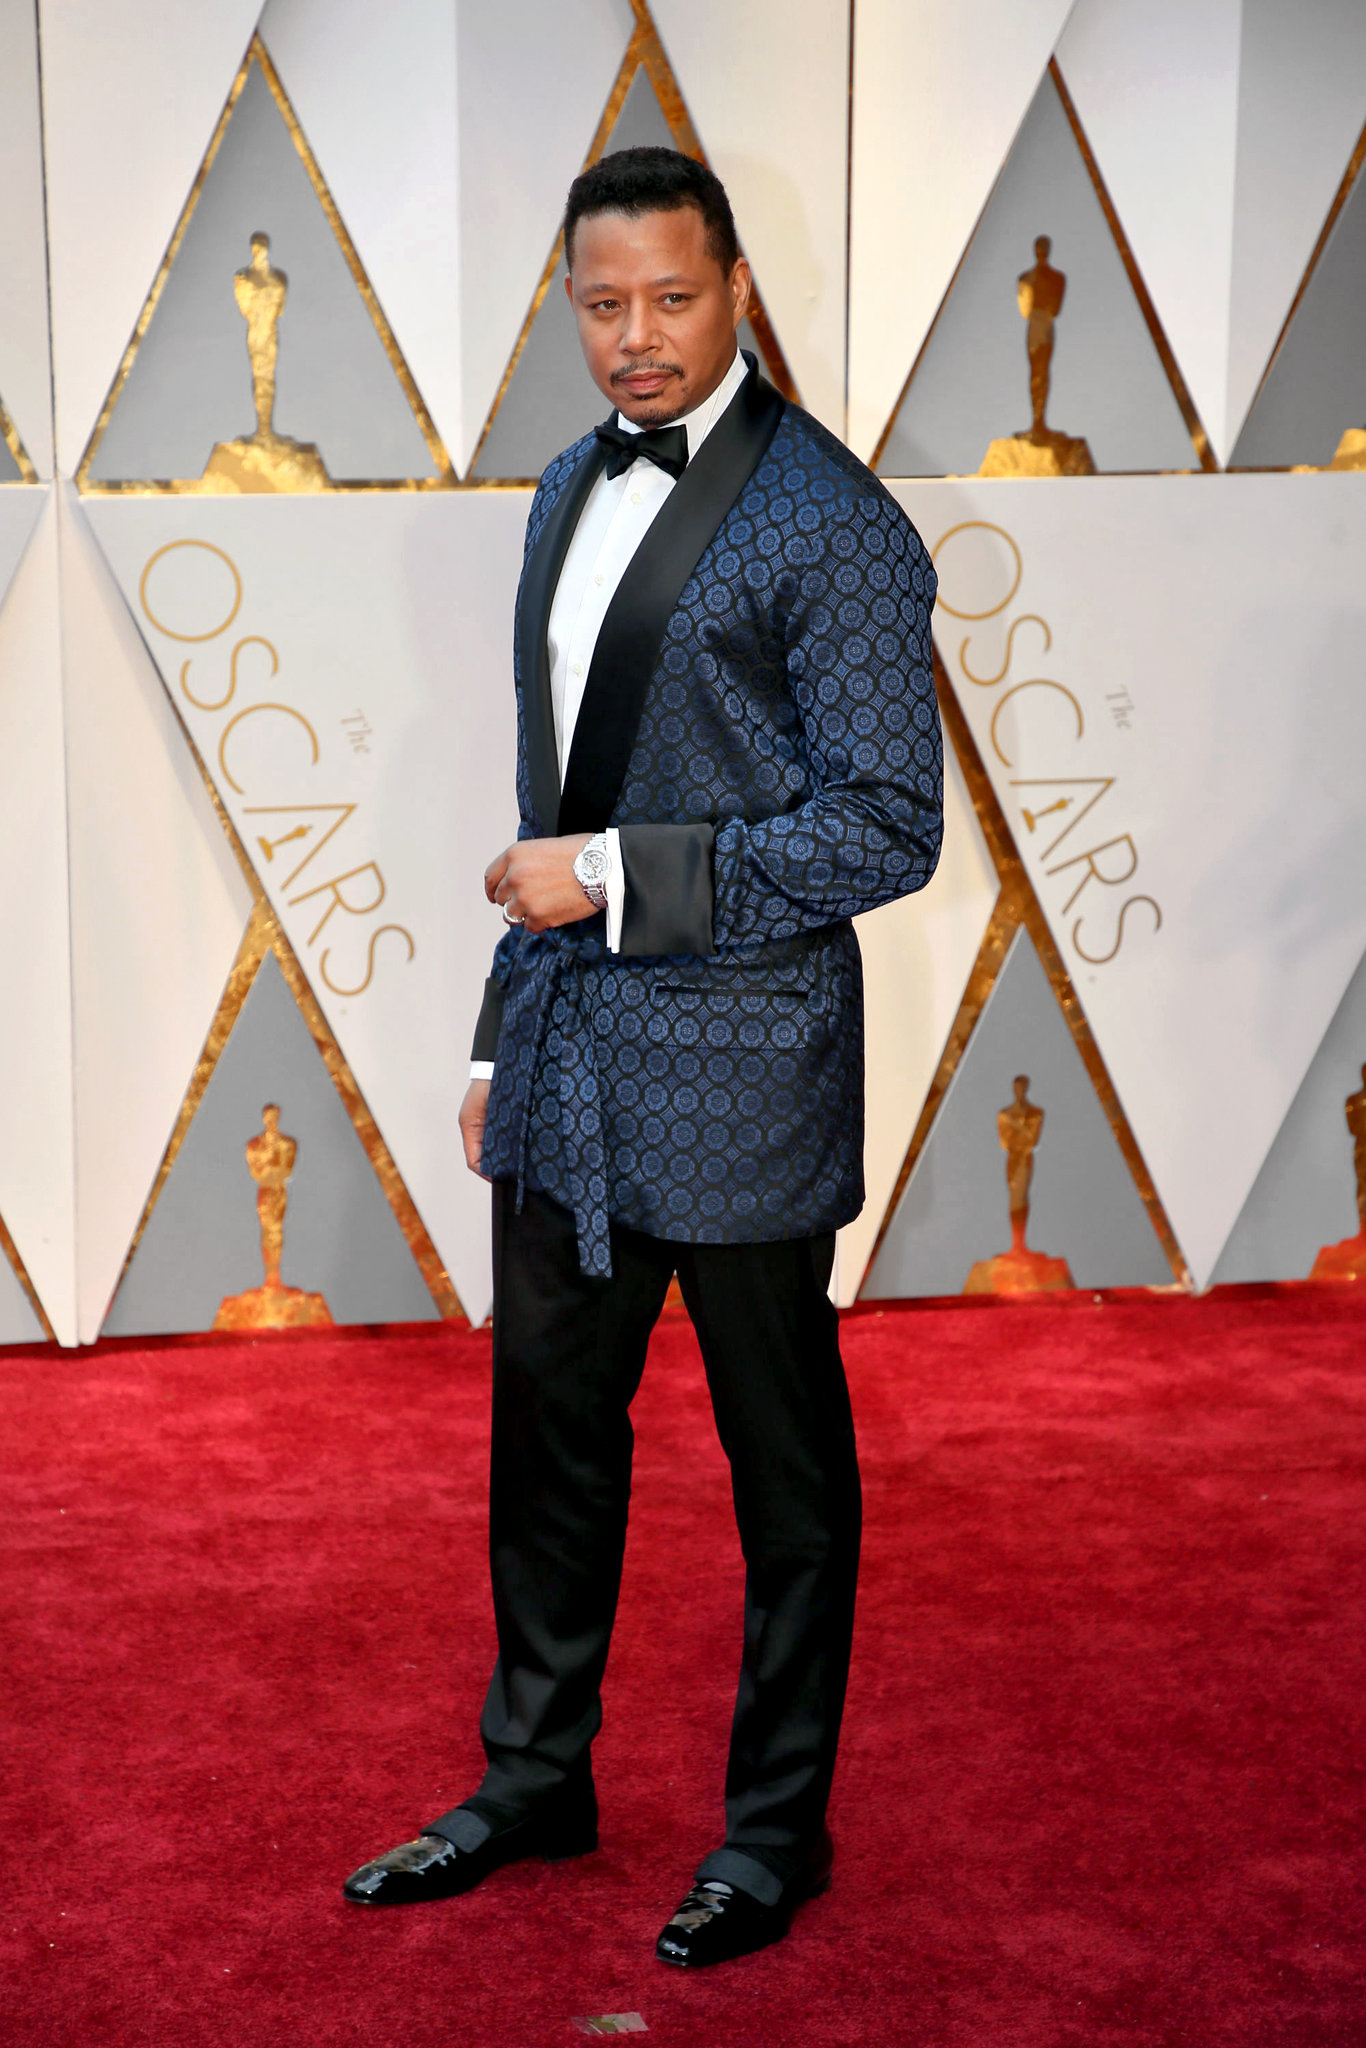 Terrence-Howard-in-House-Jacket-with-patent-leather-slippers-which-are-technically-wrong-because-unlike-Opera-Pumps-or-Court-Shoes-they-do-not-show-the-  ... 3bbdeca64e9